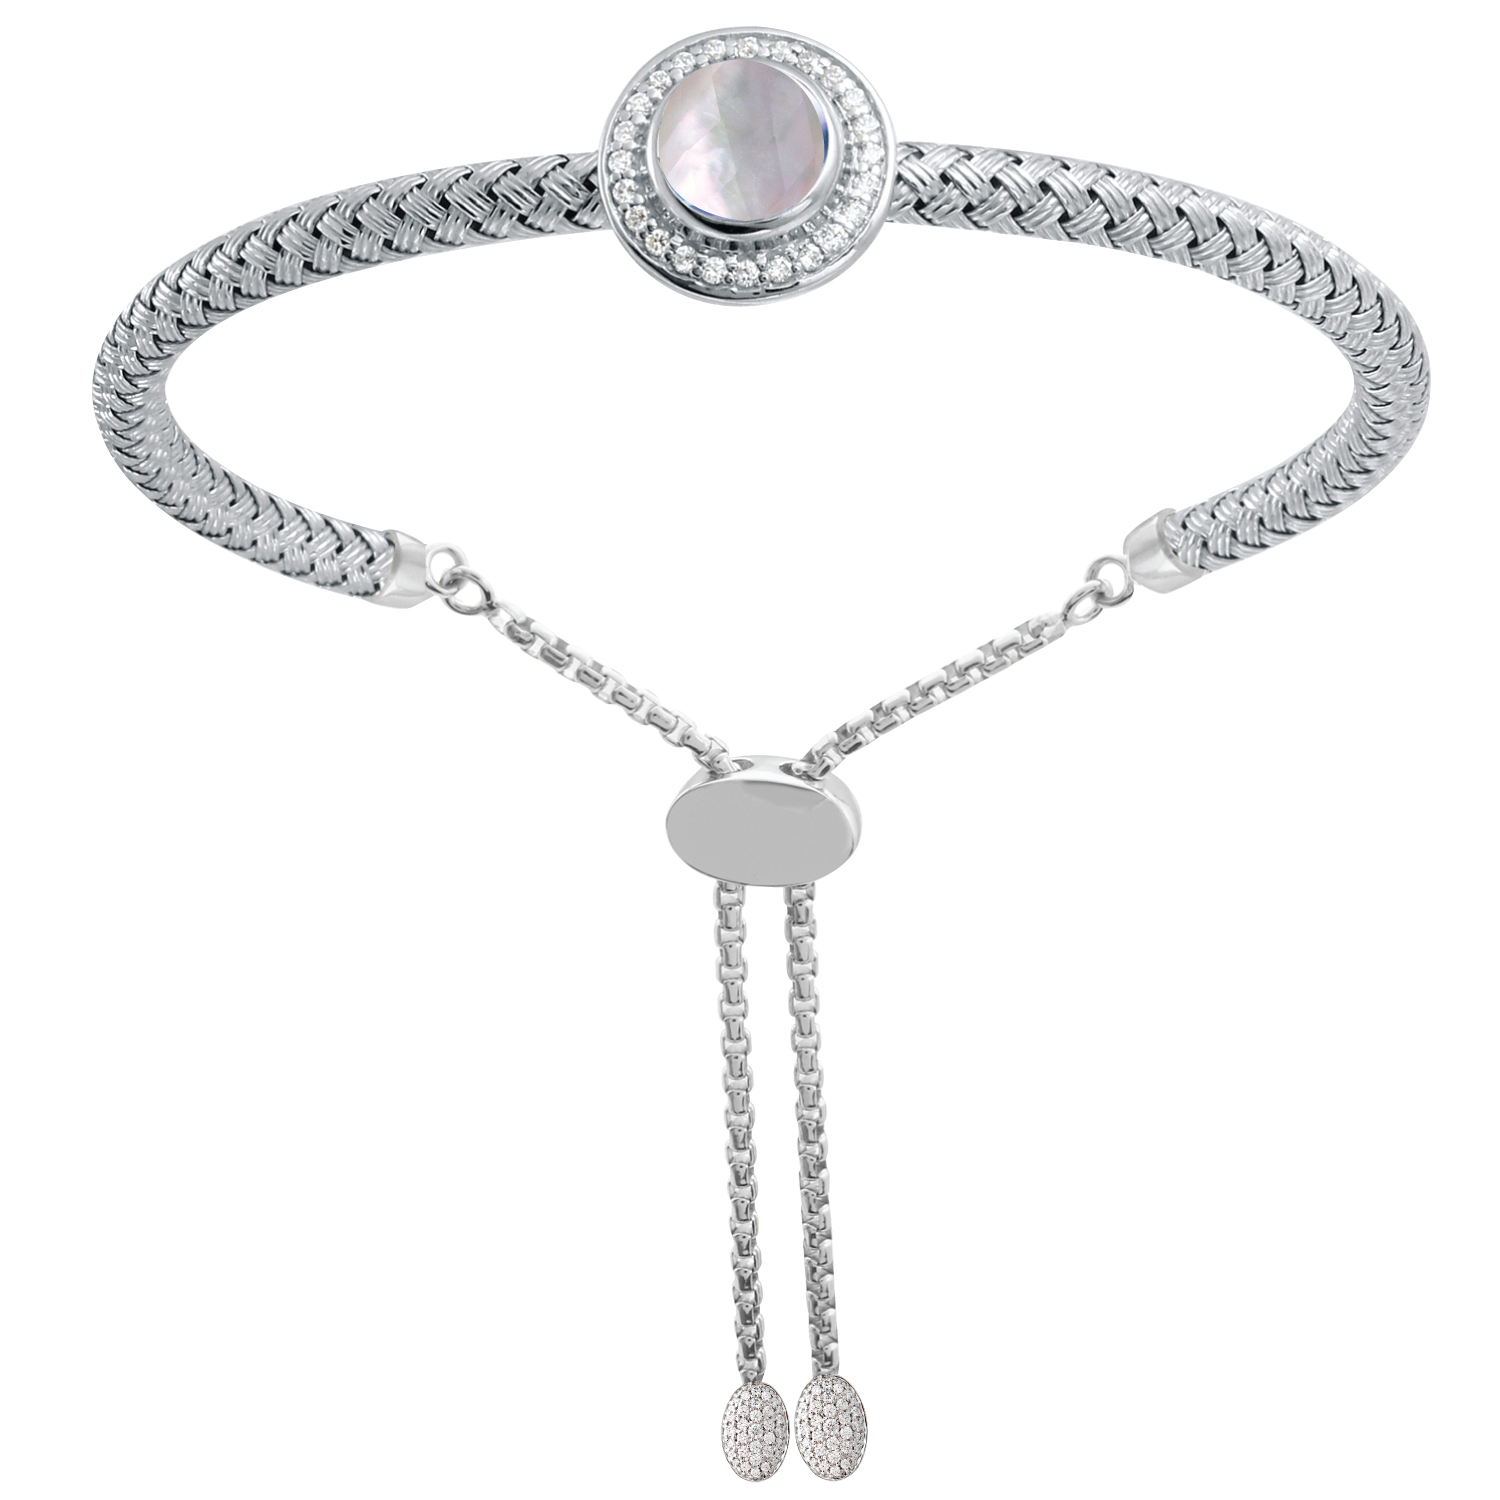 CHARLES GARNIER - Sterling Silver, Mother of Pearl and CZ Bracelet